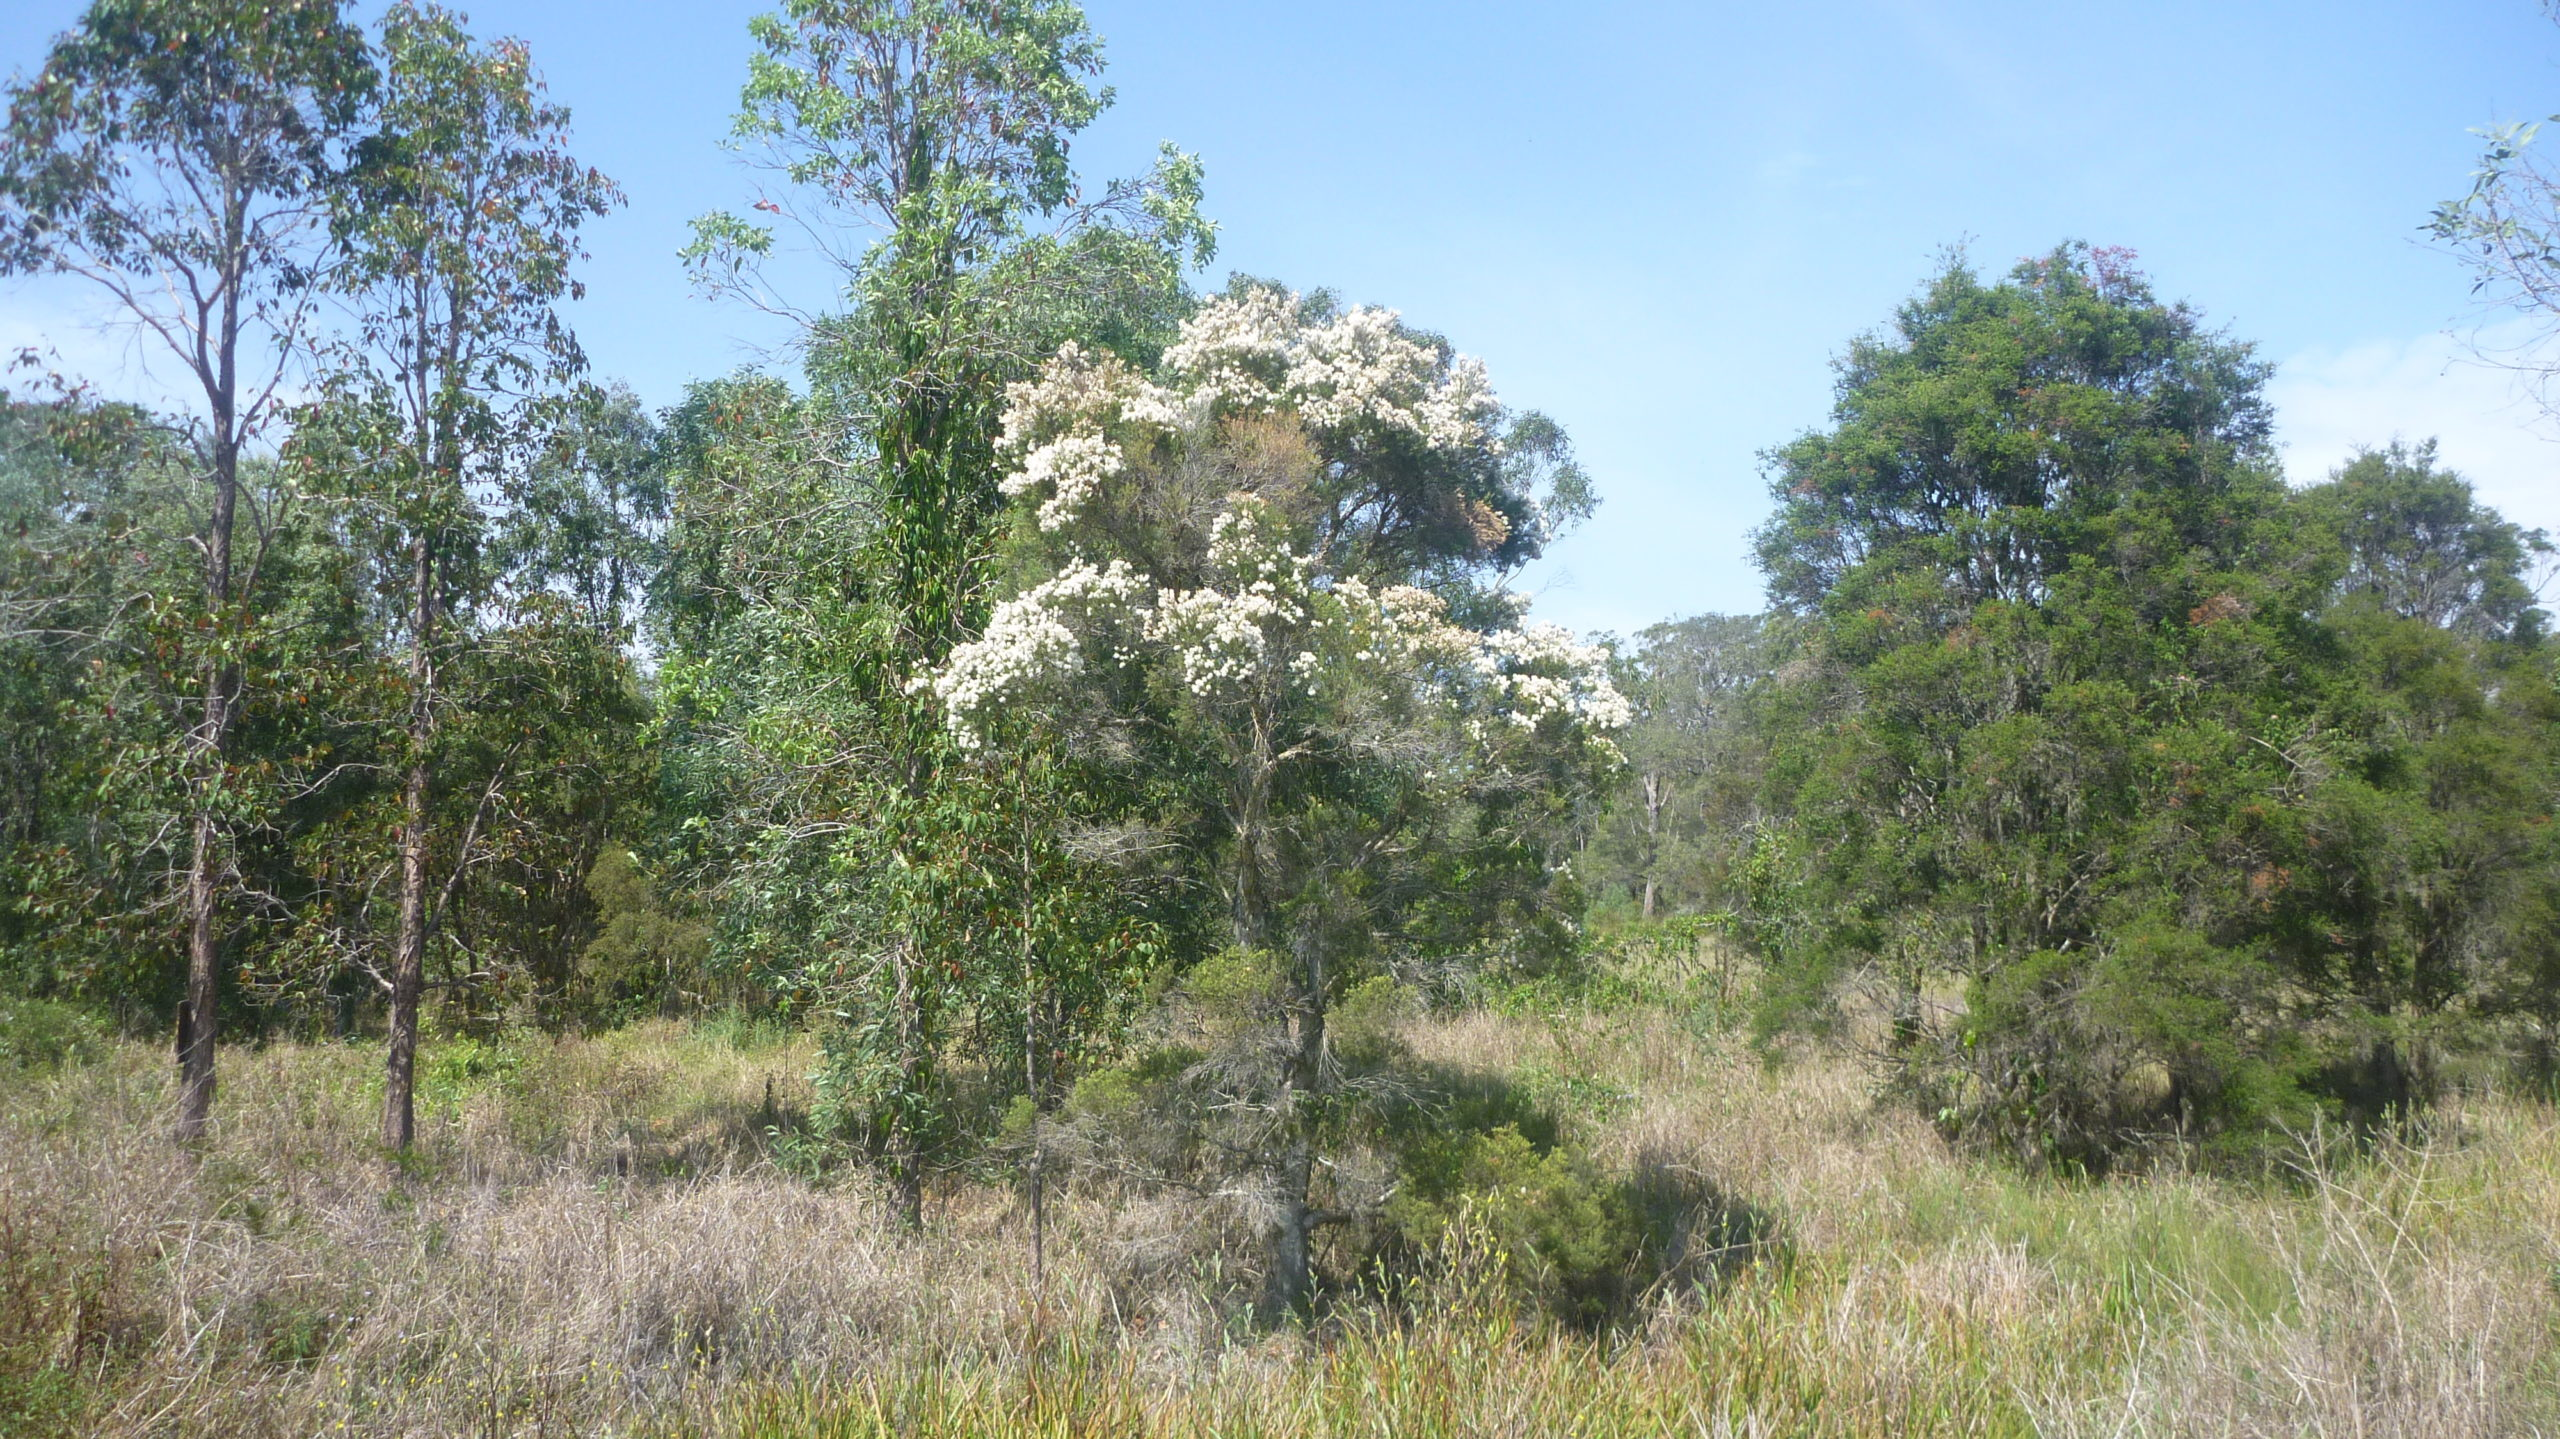 Tea Tree flowering in the wild